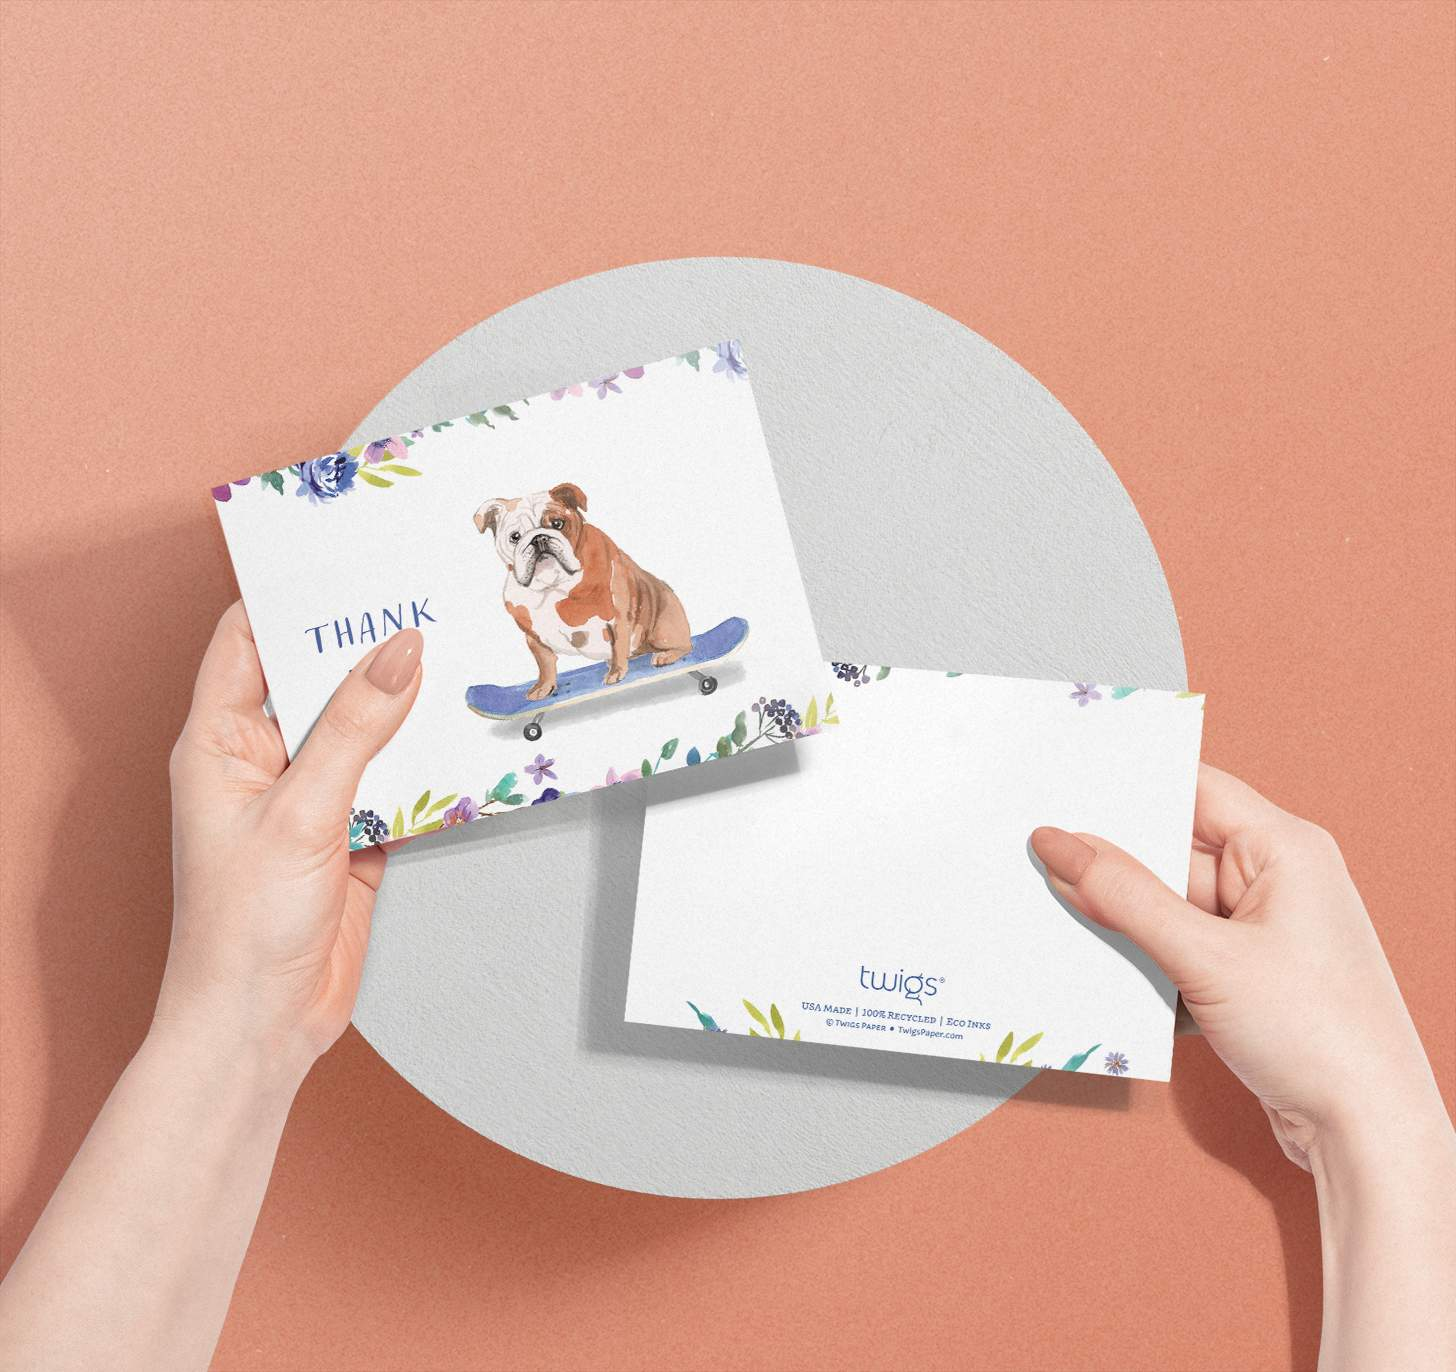 Woman's hands holding card with brown and white dog riding skateboard design